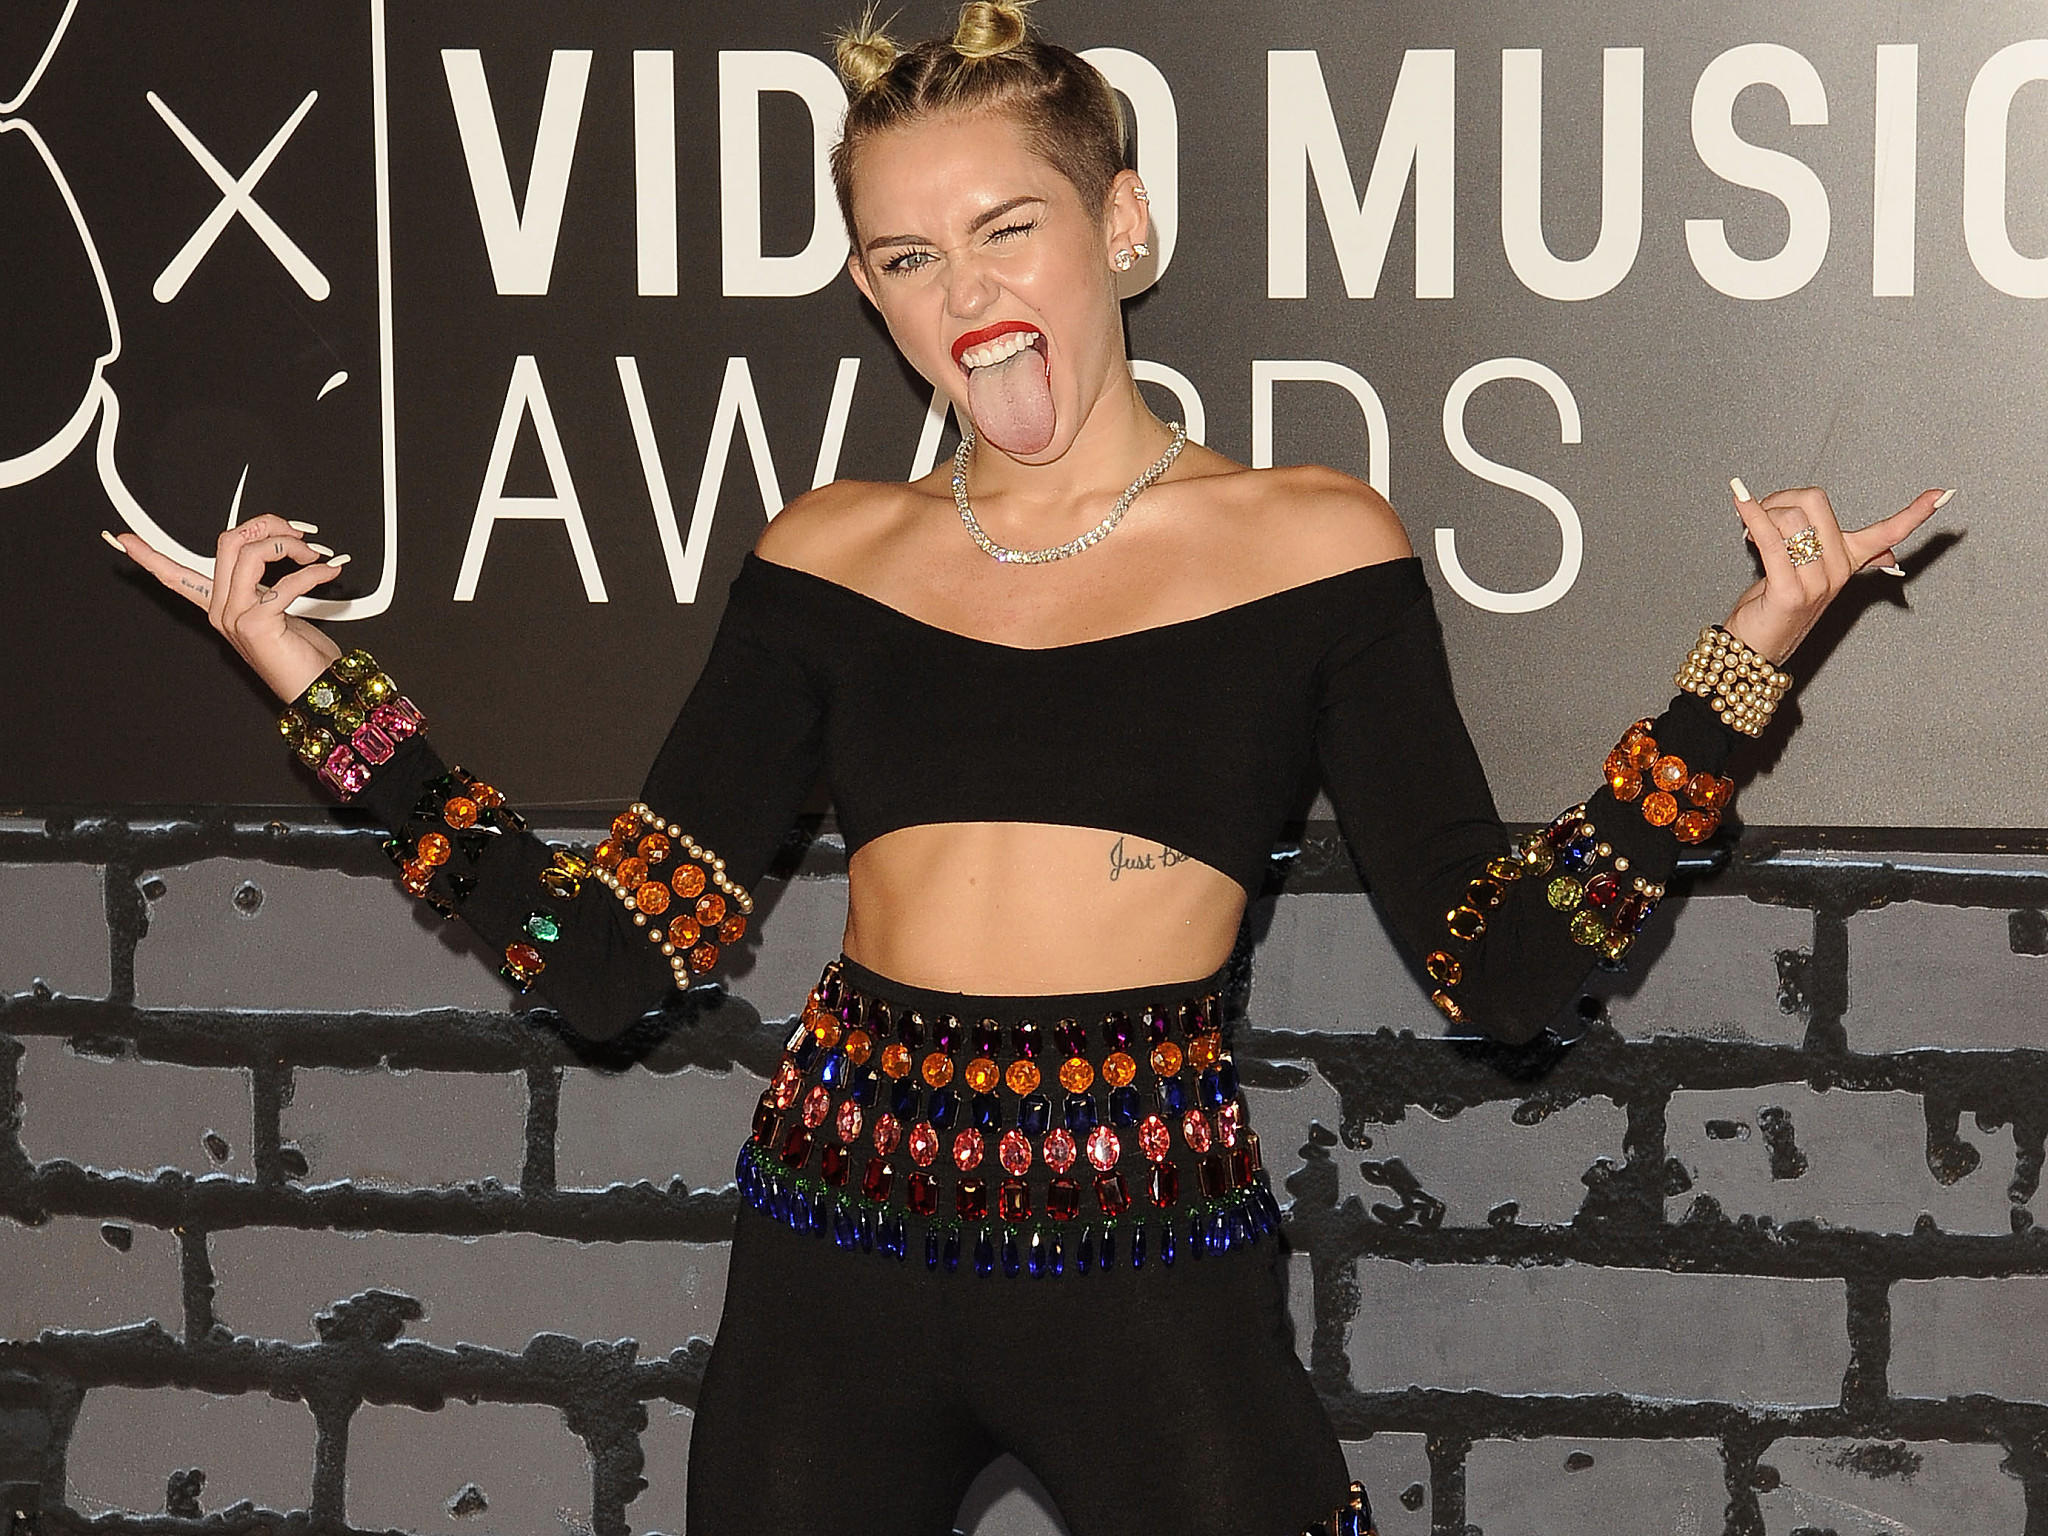 MTV Video Music Awards 2013 Miley Cyrus